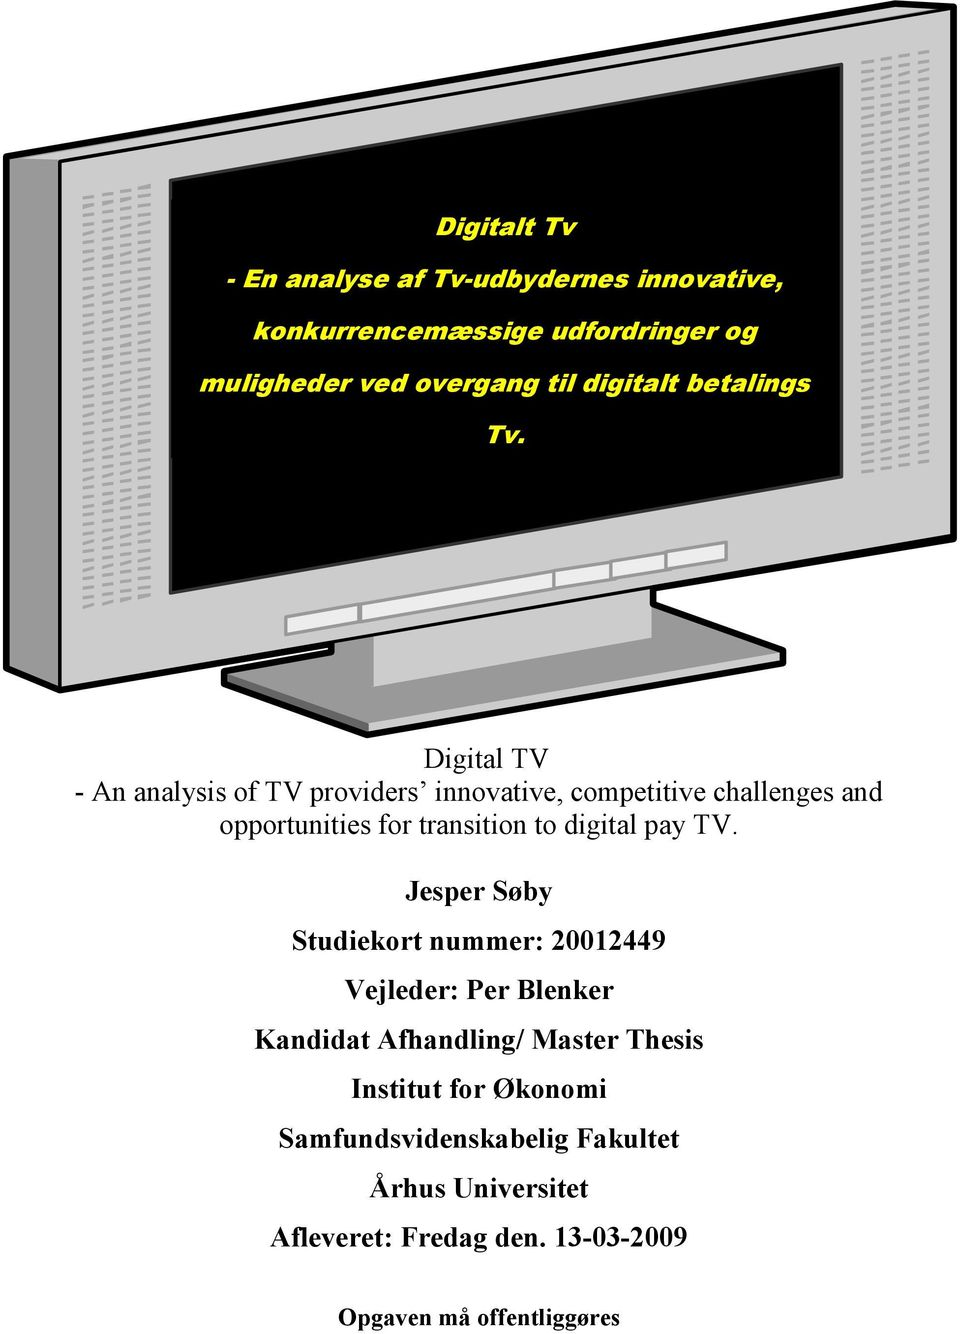 Digital TV - An analysis of TV providers innovative, competitive challenges and opportunities for transition to digital pay